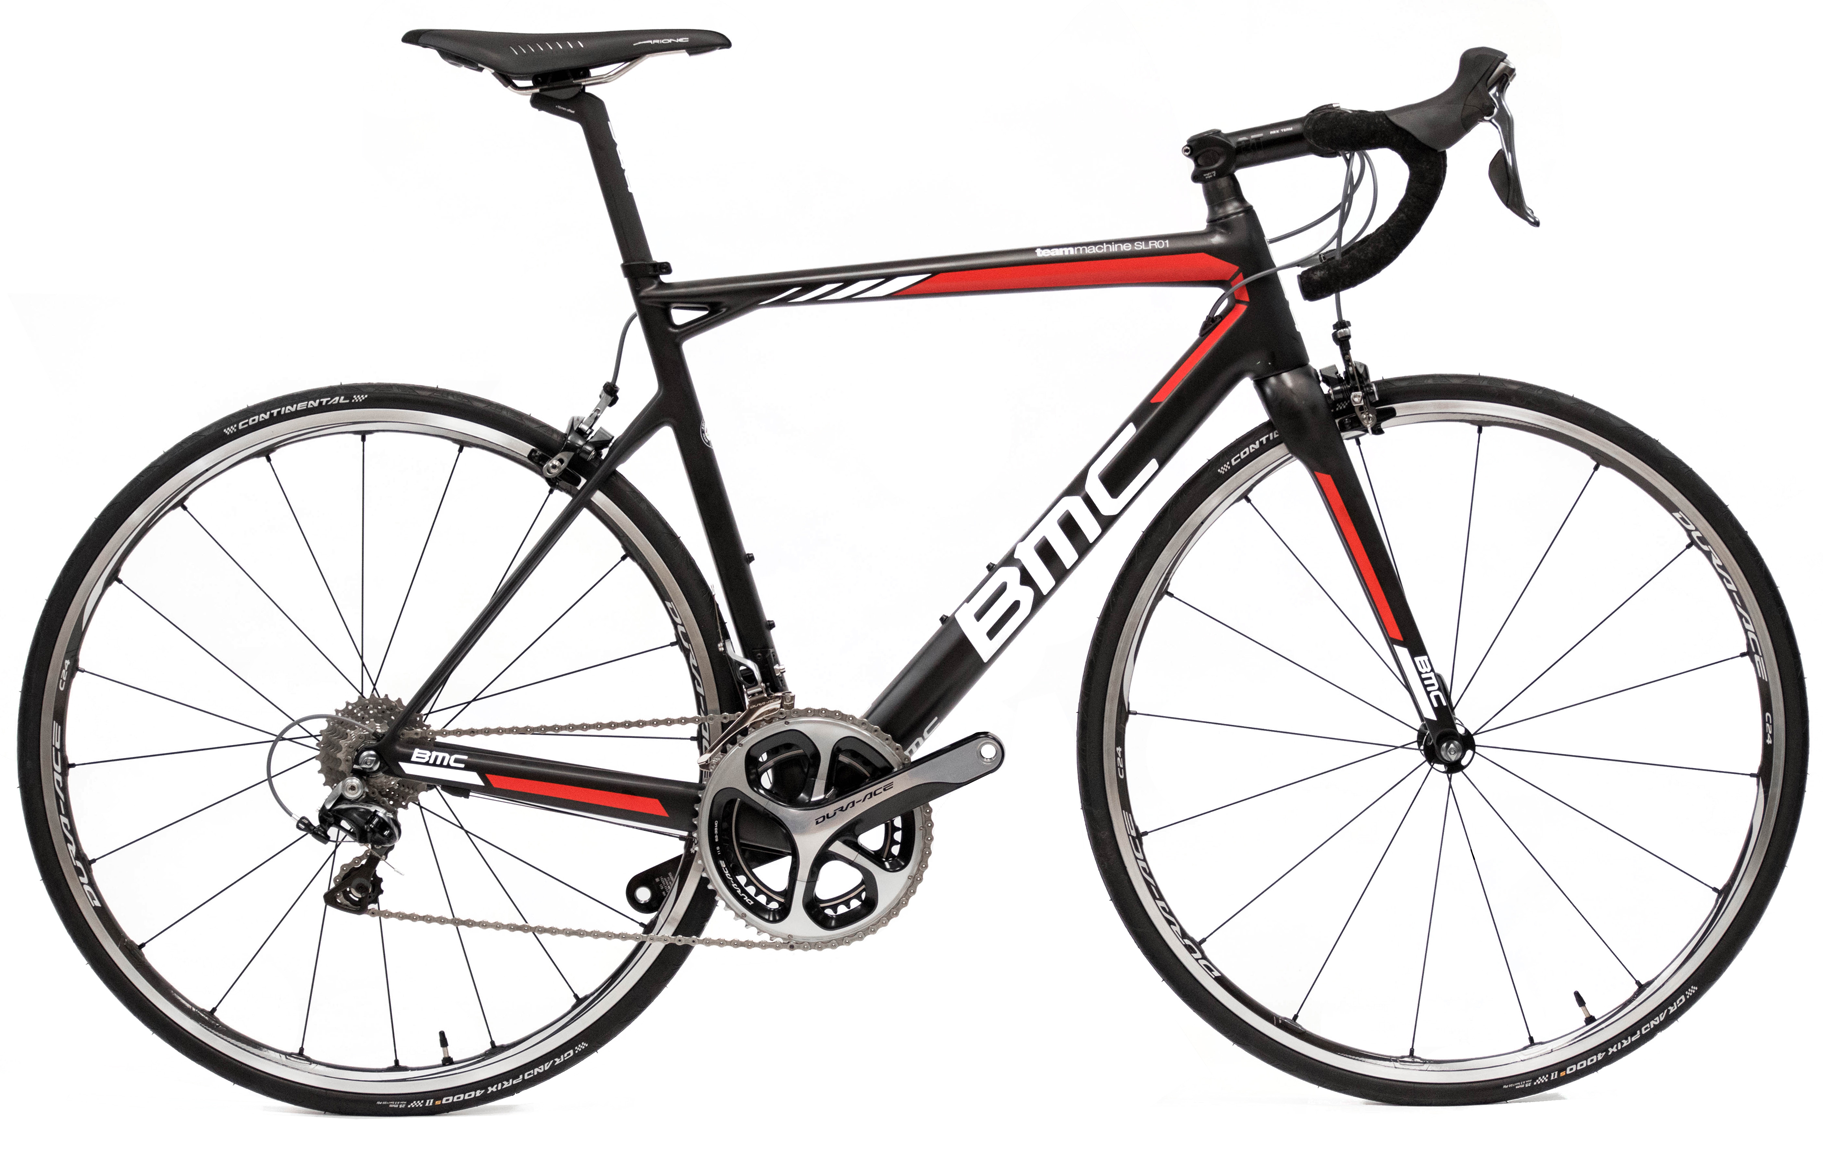 2016 BMC SLR01 Dura-ace 9000 Road Bike - Racer Sportif